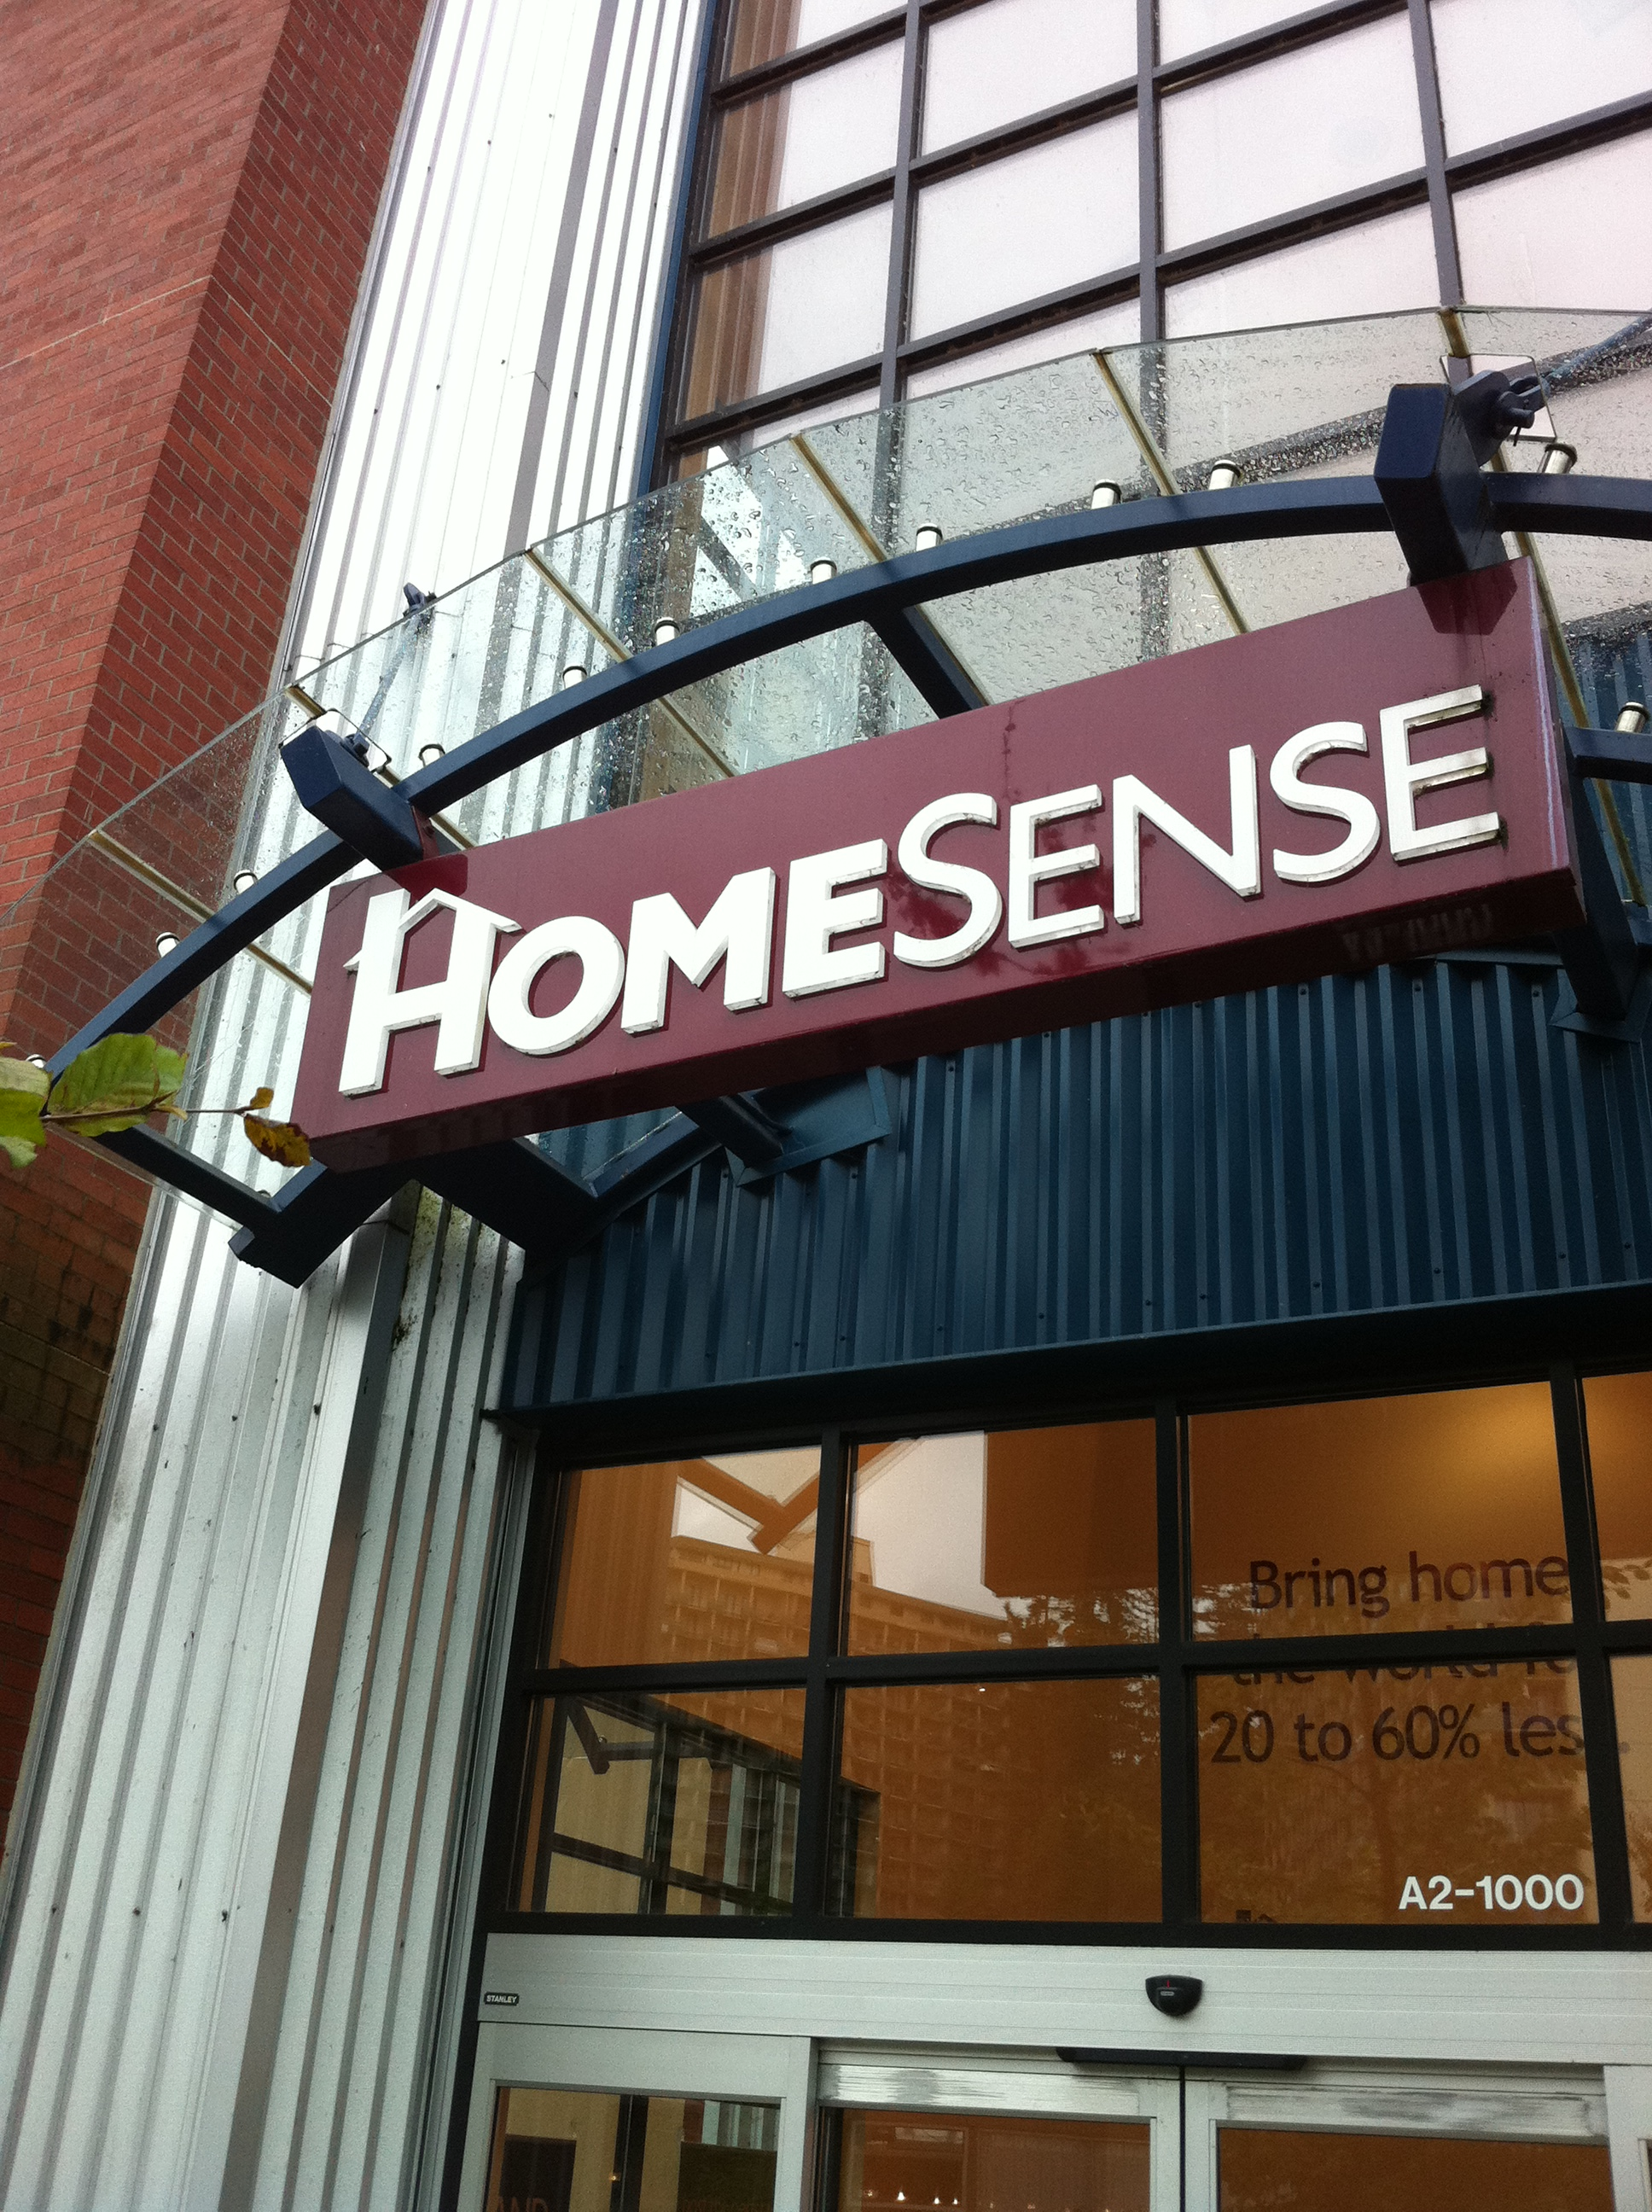 Furniture Pick Up From Homesense Store And Drop Off To A